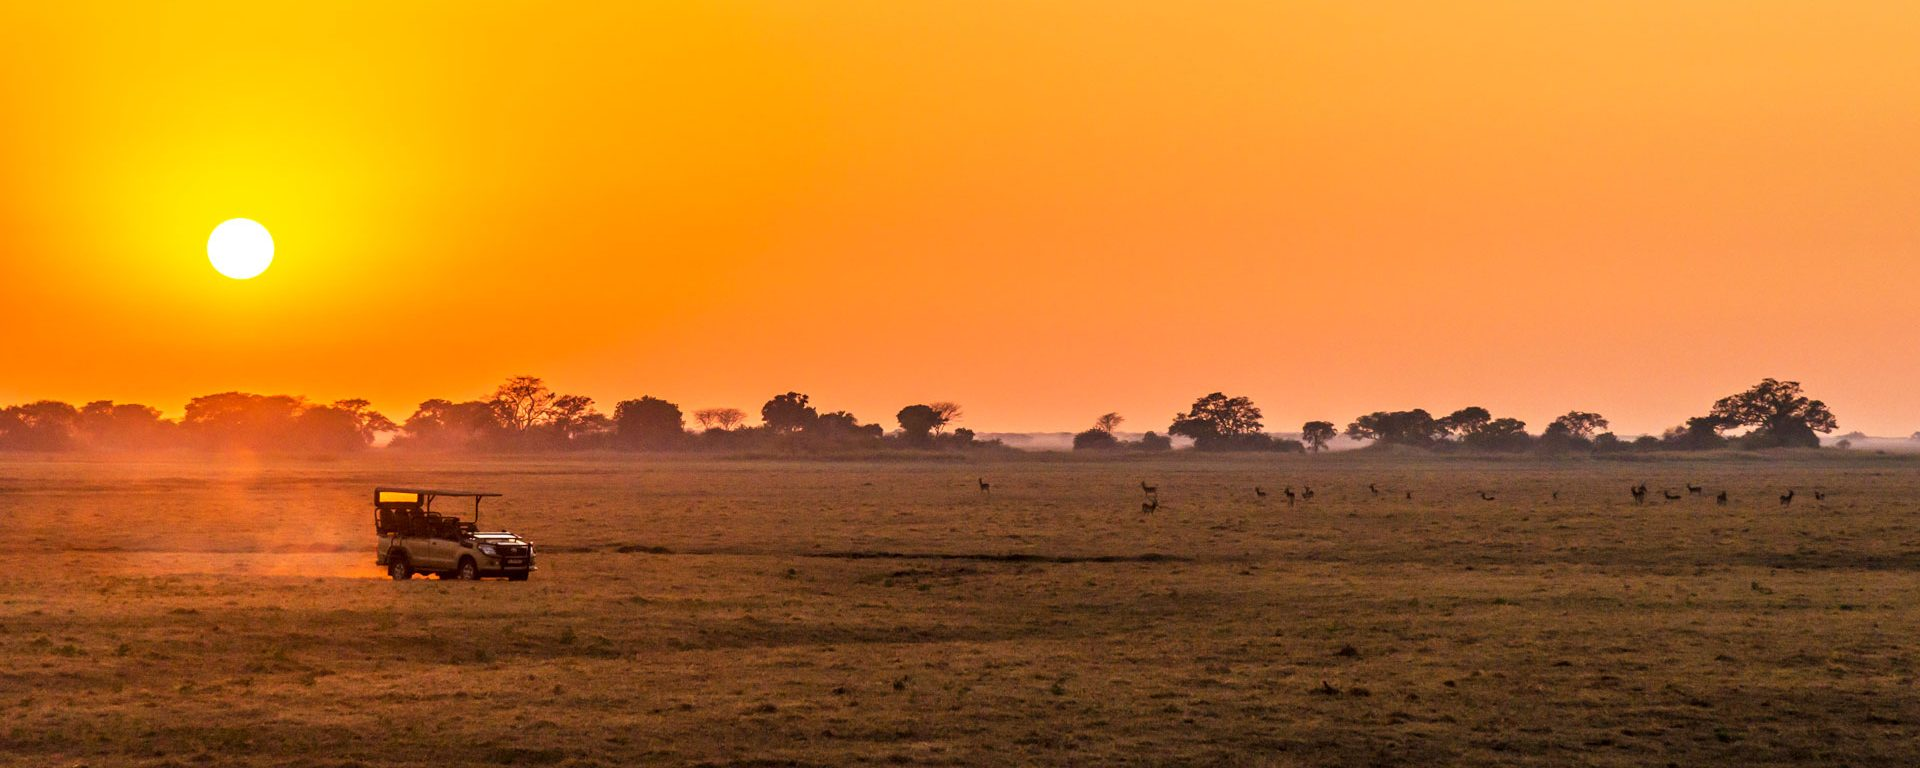 Safari vehicle at sunrise in Kafue National Park, Zambia